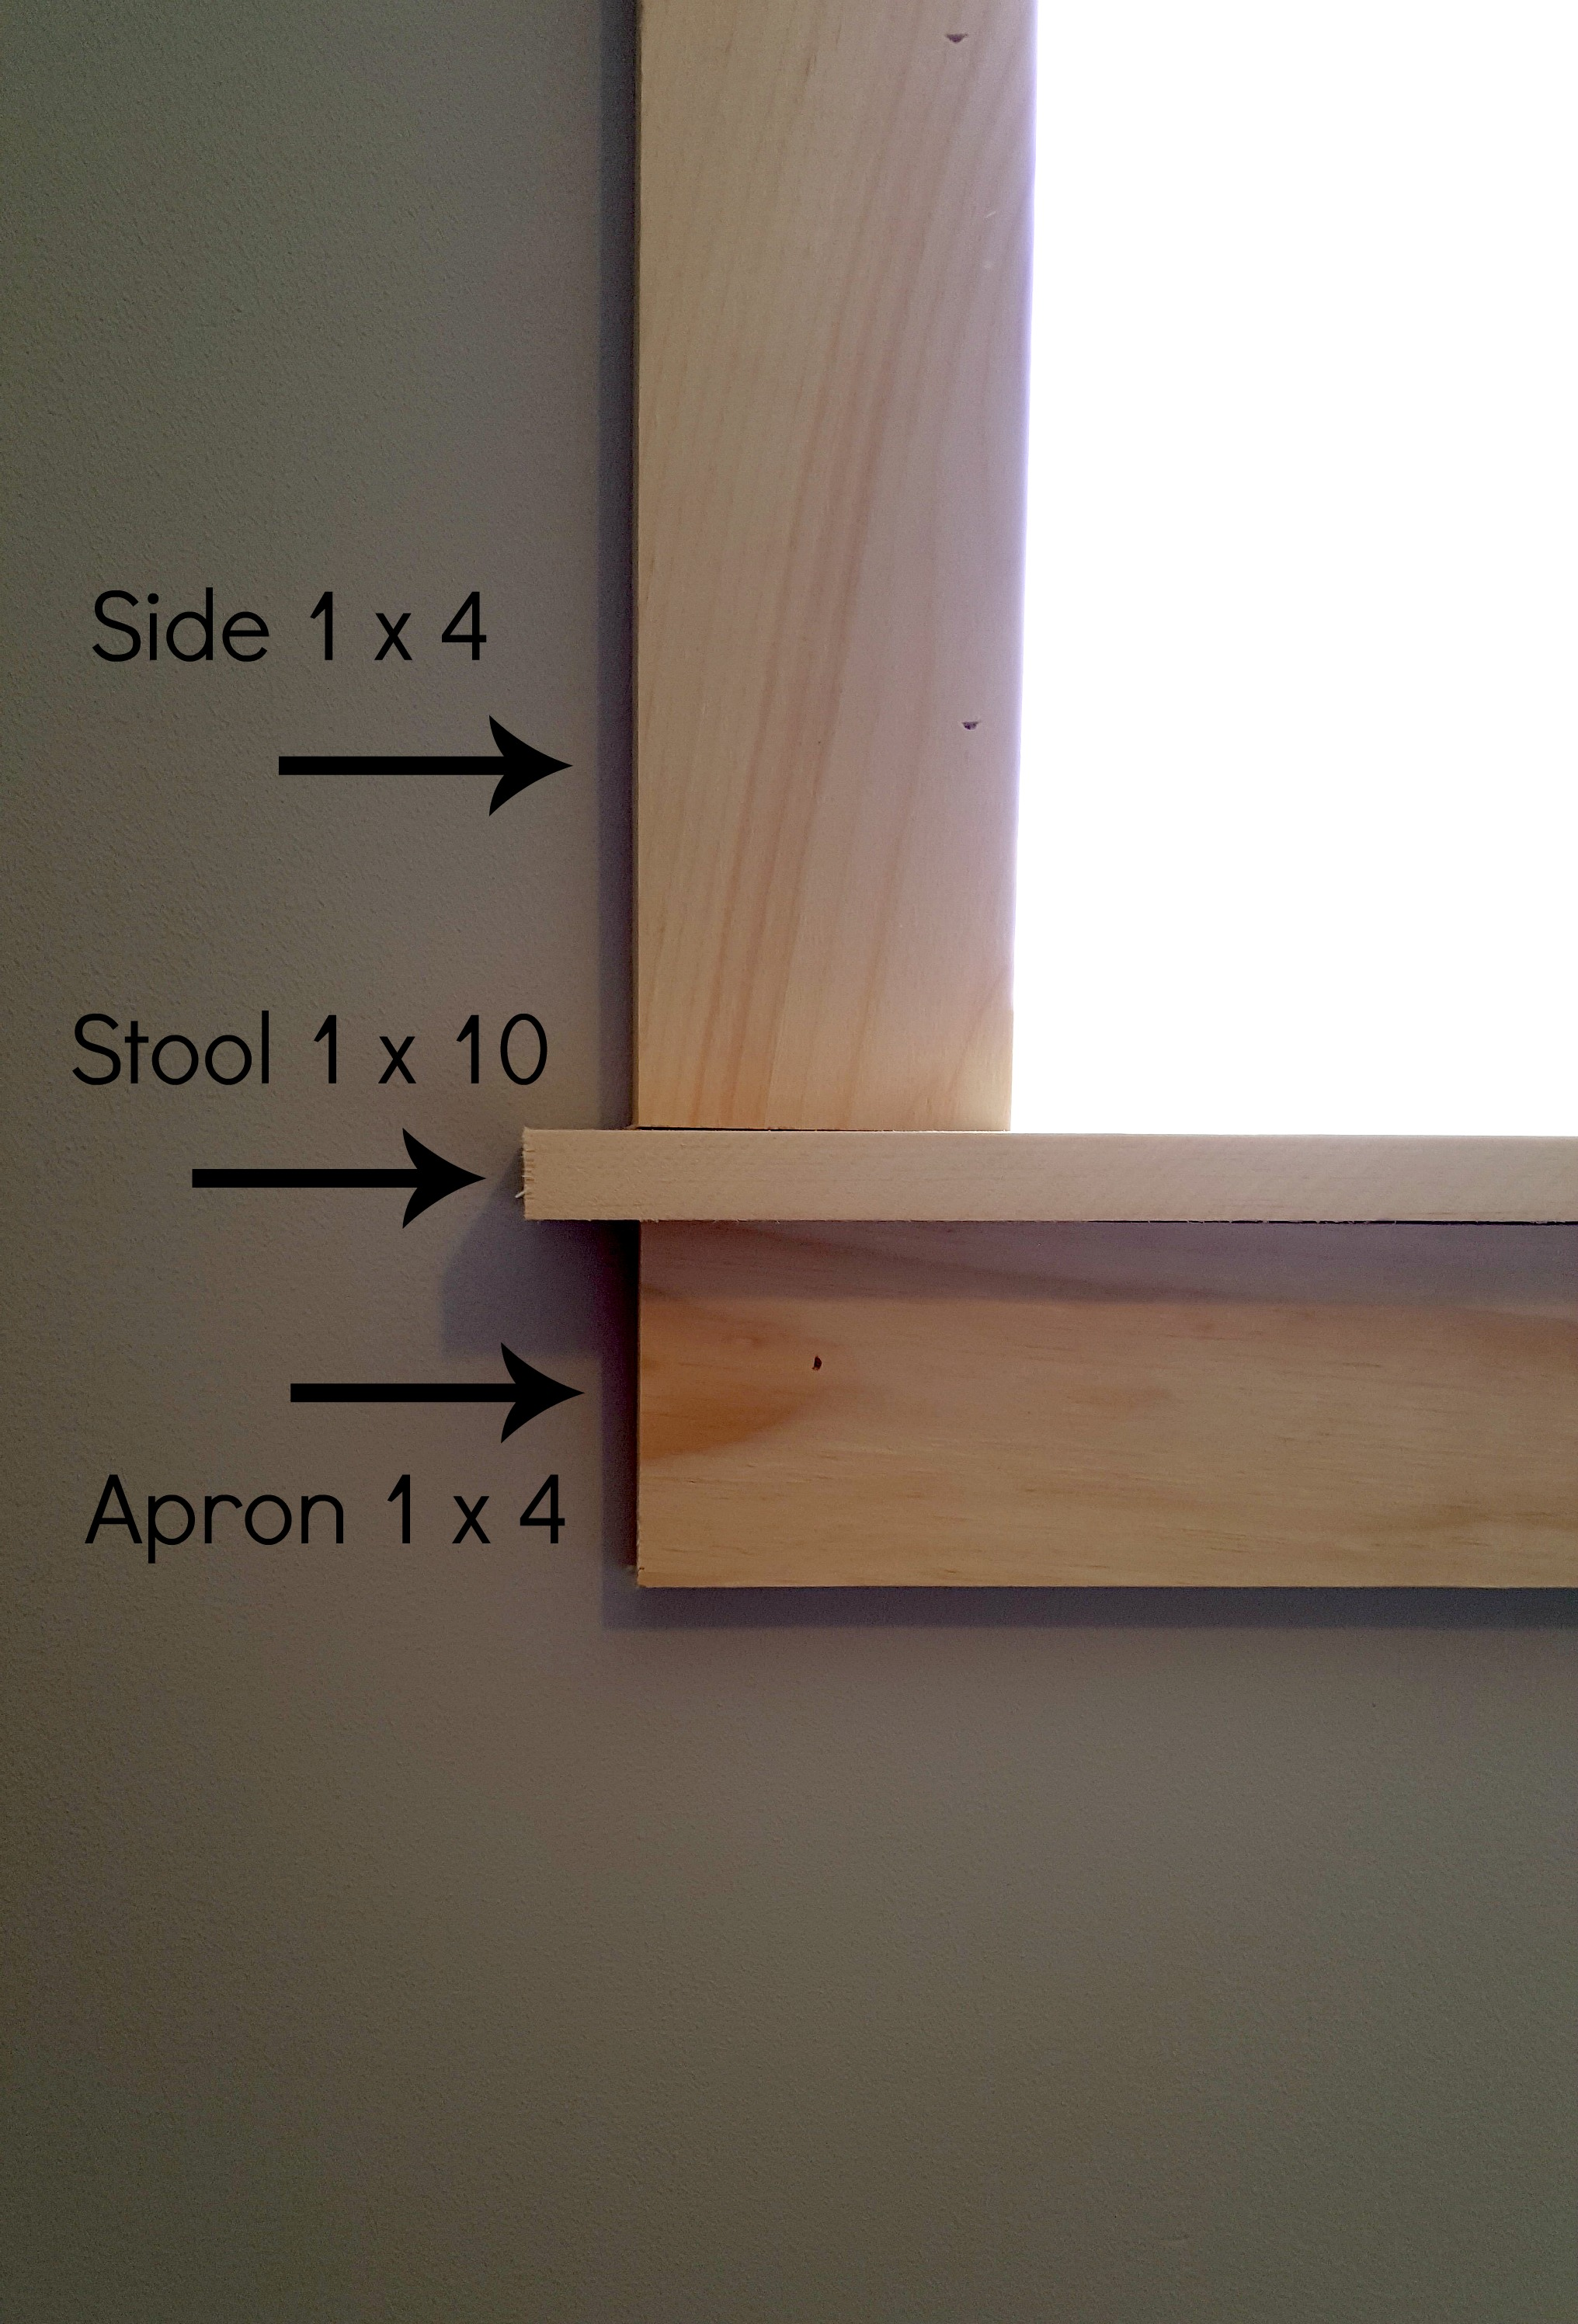 Window Stool Or Sill How To Install Craftsman Style